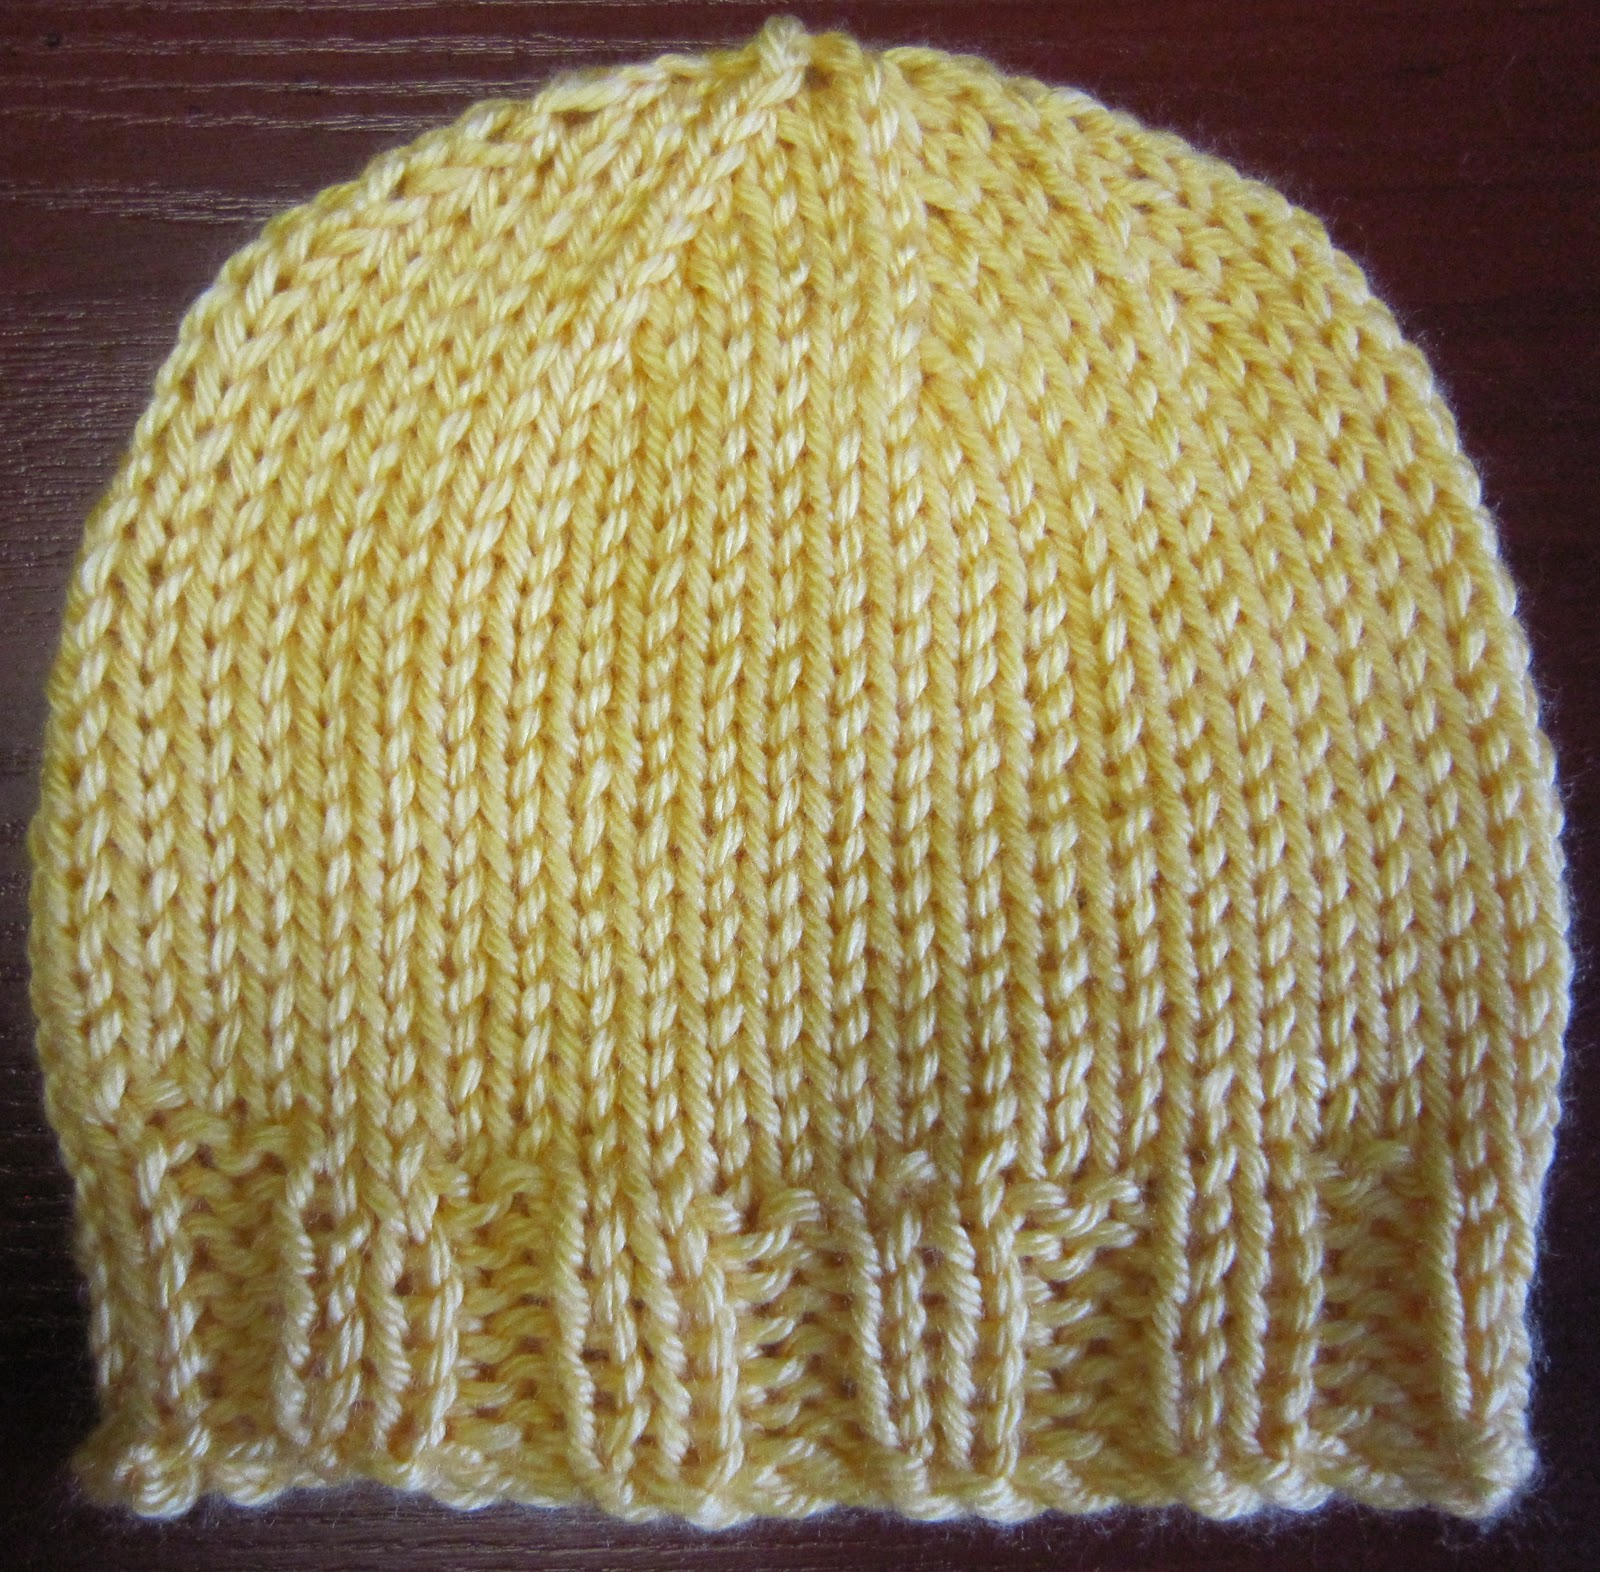 Sea Trail Grandmas: Newborn Hat Knit Pattern with 4 ply yarn and Double Point...